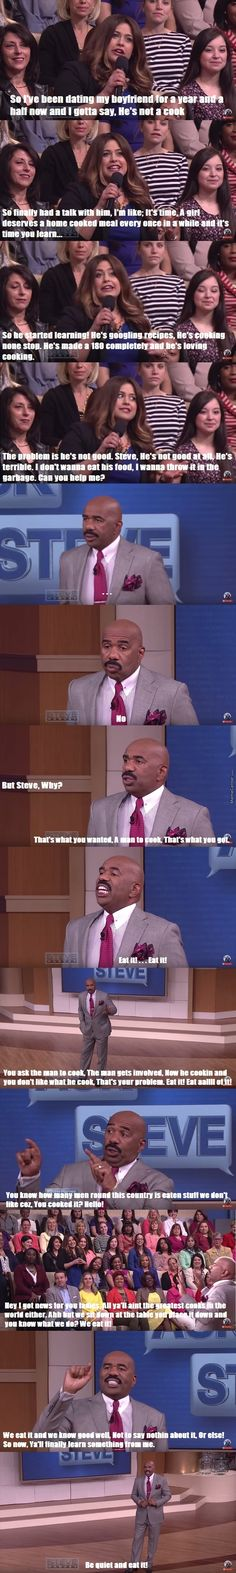 Steve Harvey tells women what's up   http://ift.tt/1Ss3jNx via /r/funny http://ift.tt/1VgI2V4  funny pictures